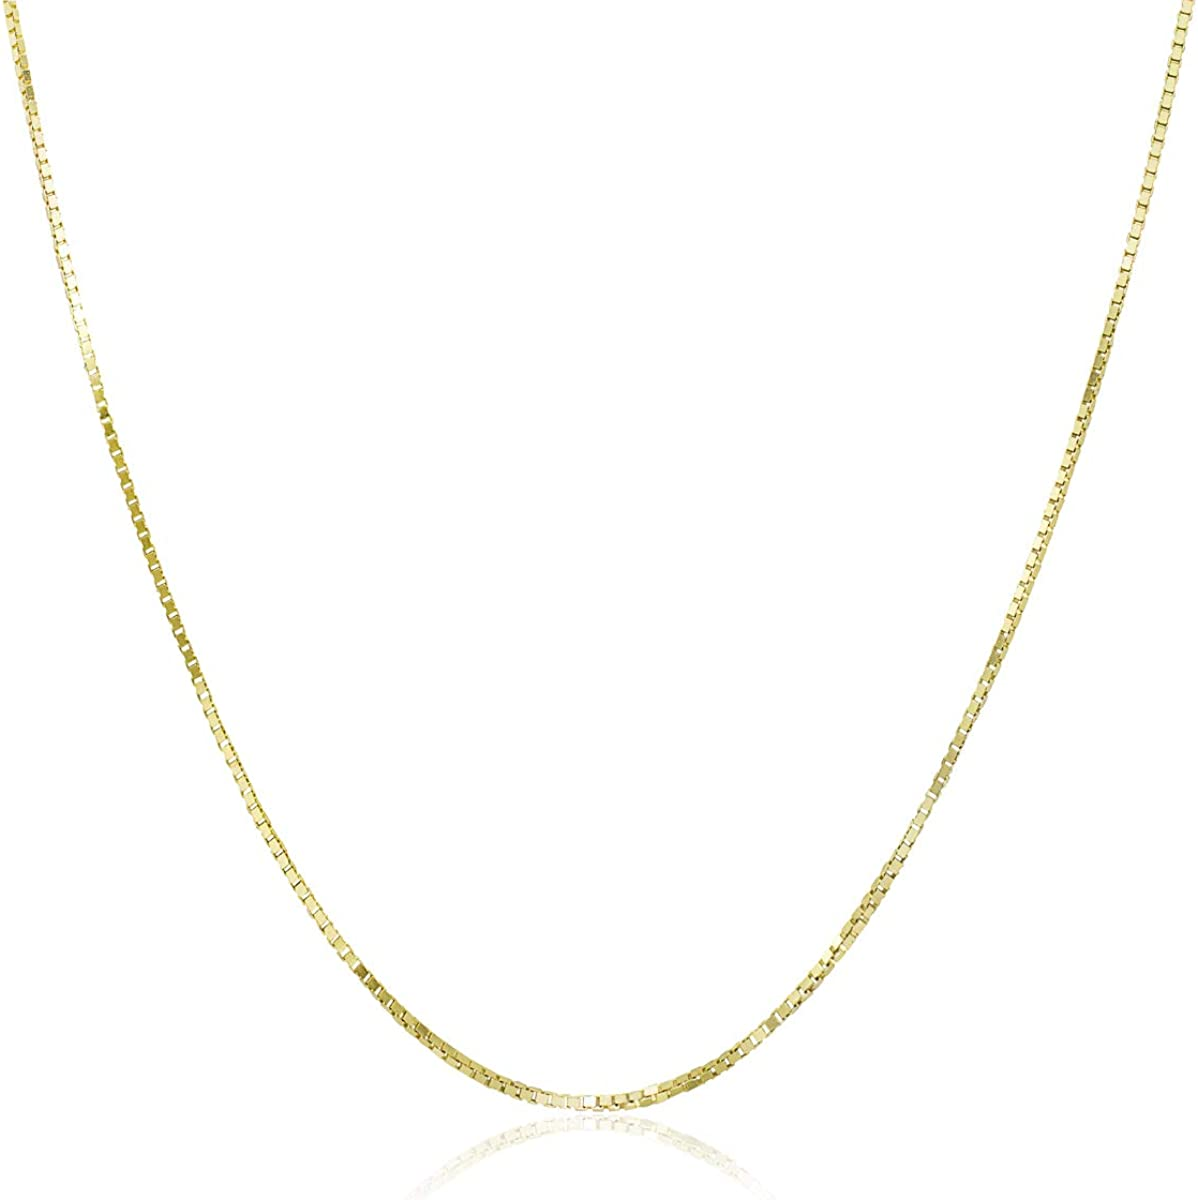 Honolulu Jewelry Company 10K Solid Gold 0.8mm Box Chain Necklace, 16